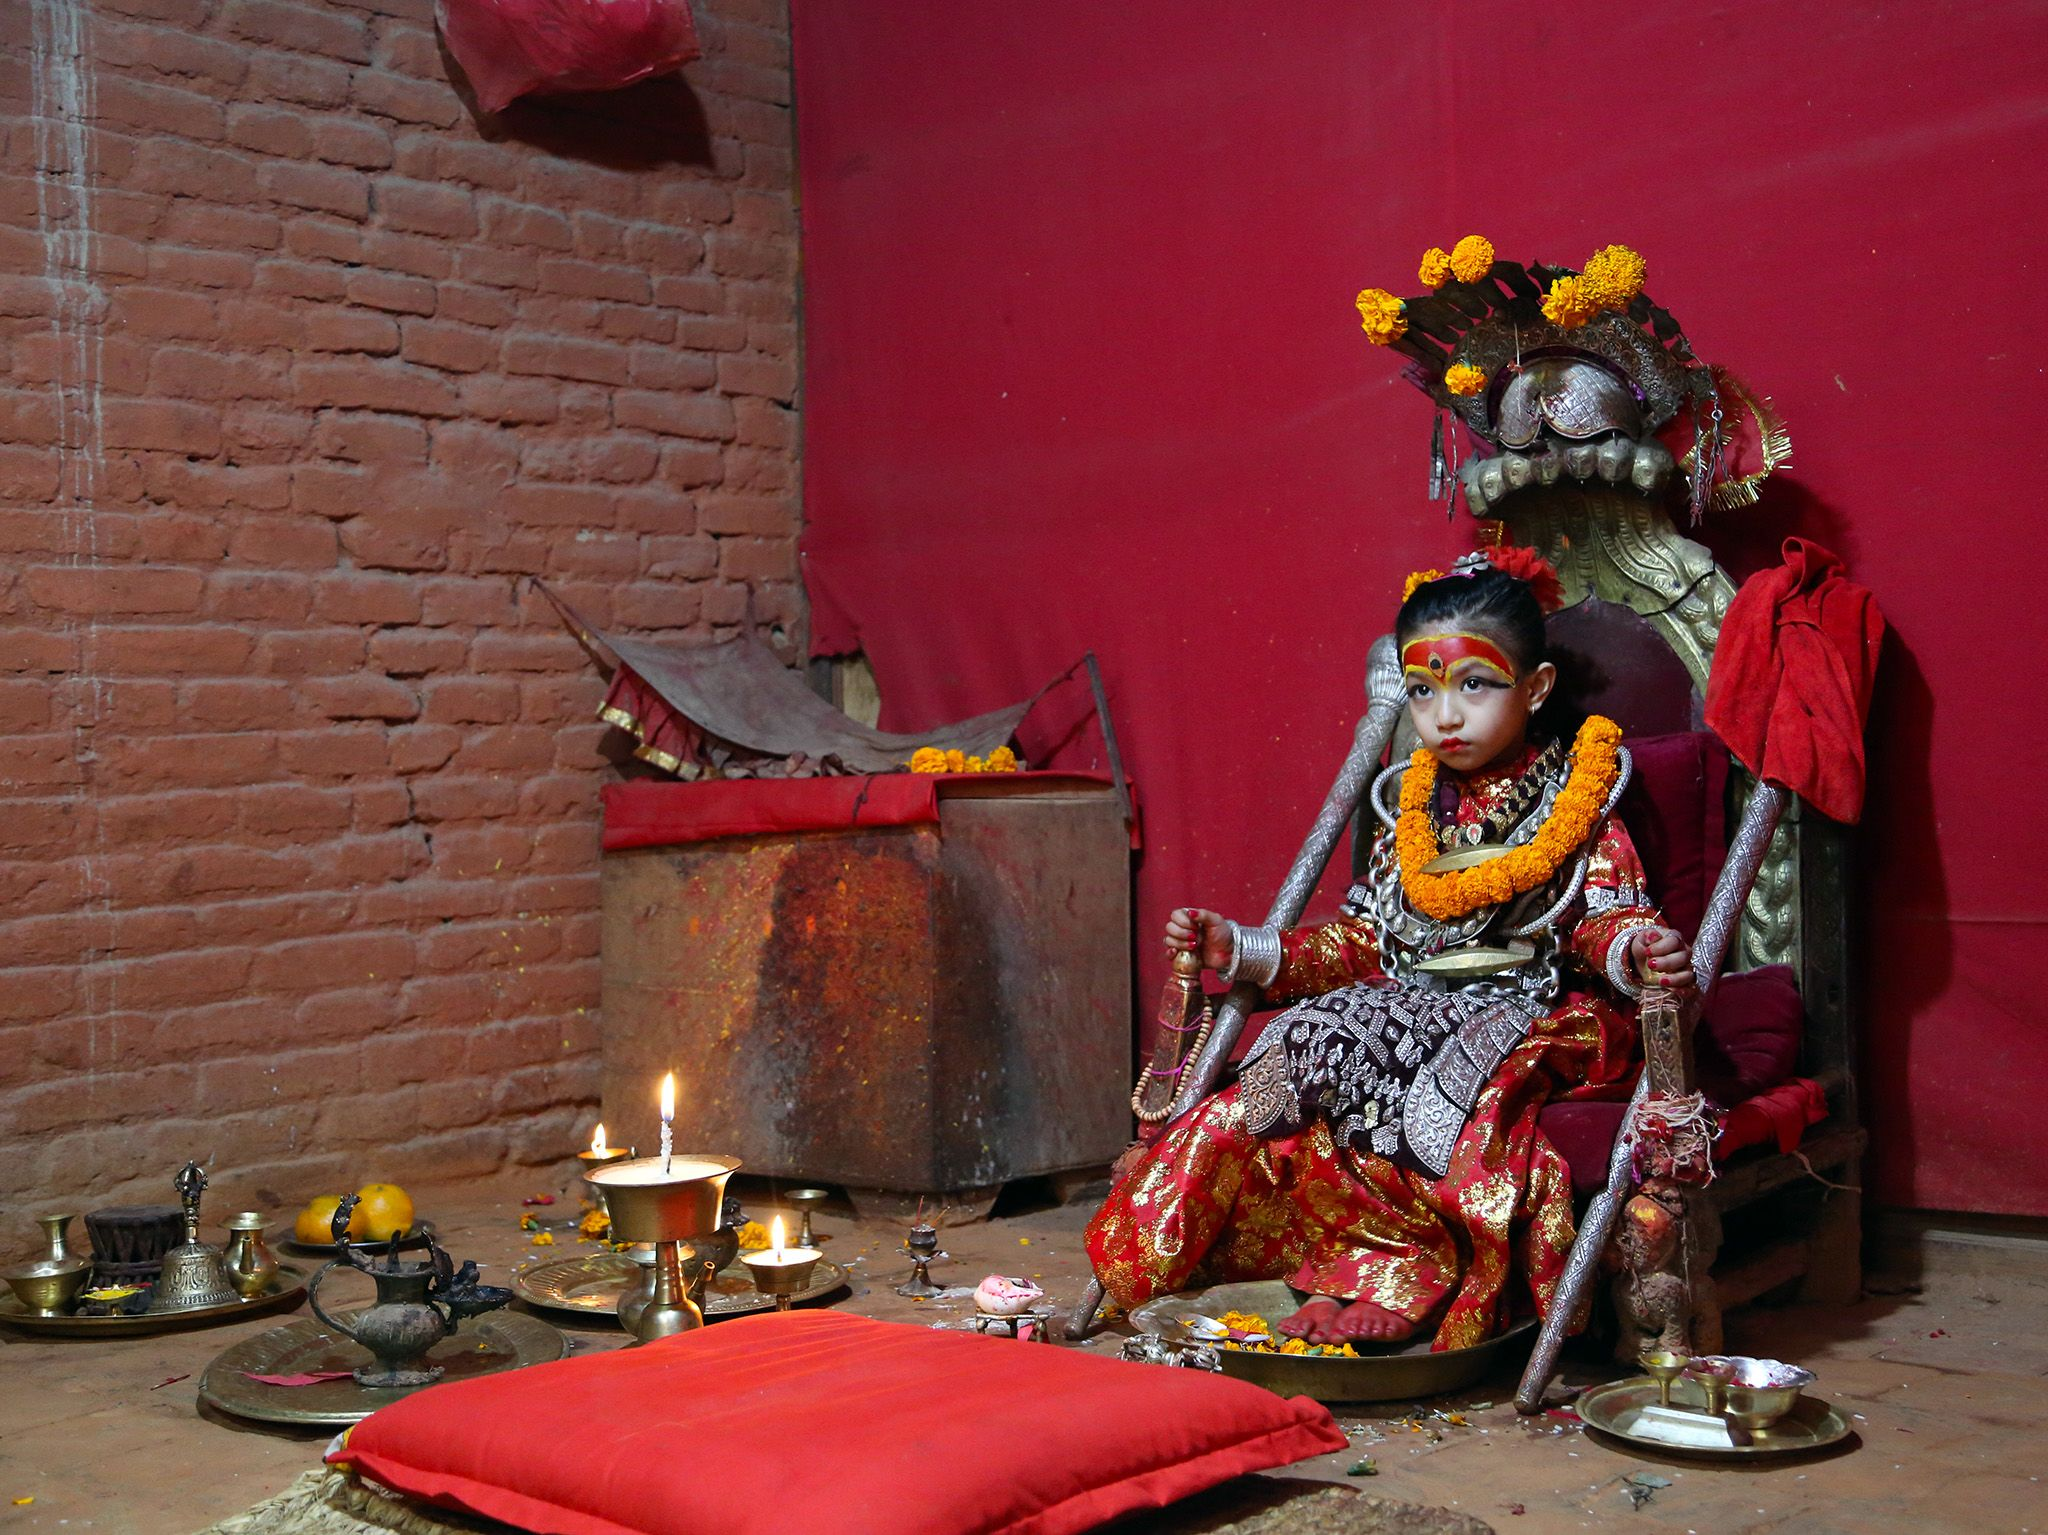 Nihira Bajracharya, the Kumari Goddess, sits in her temple.  This image is from The Story of God... [Foto del giorno - marzo 2019]